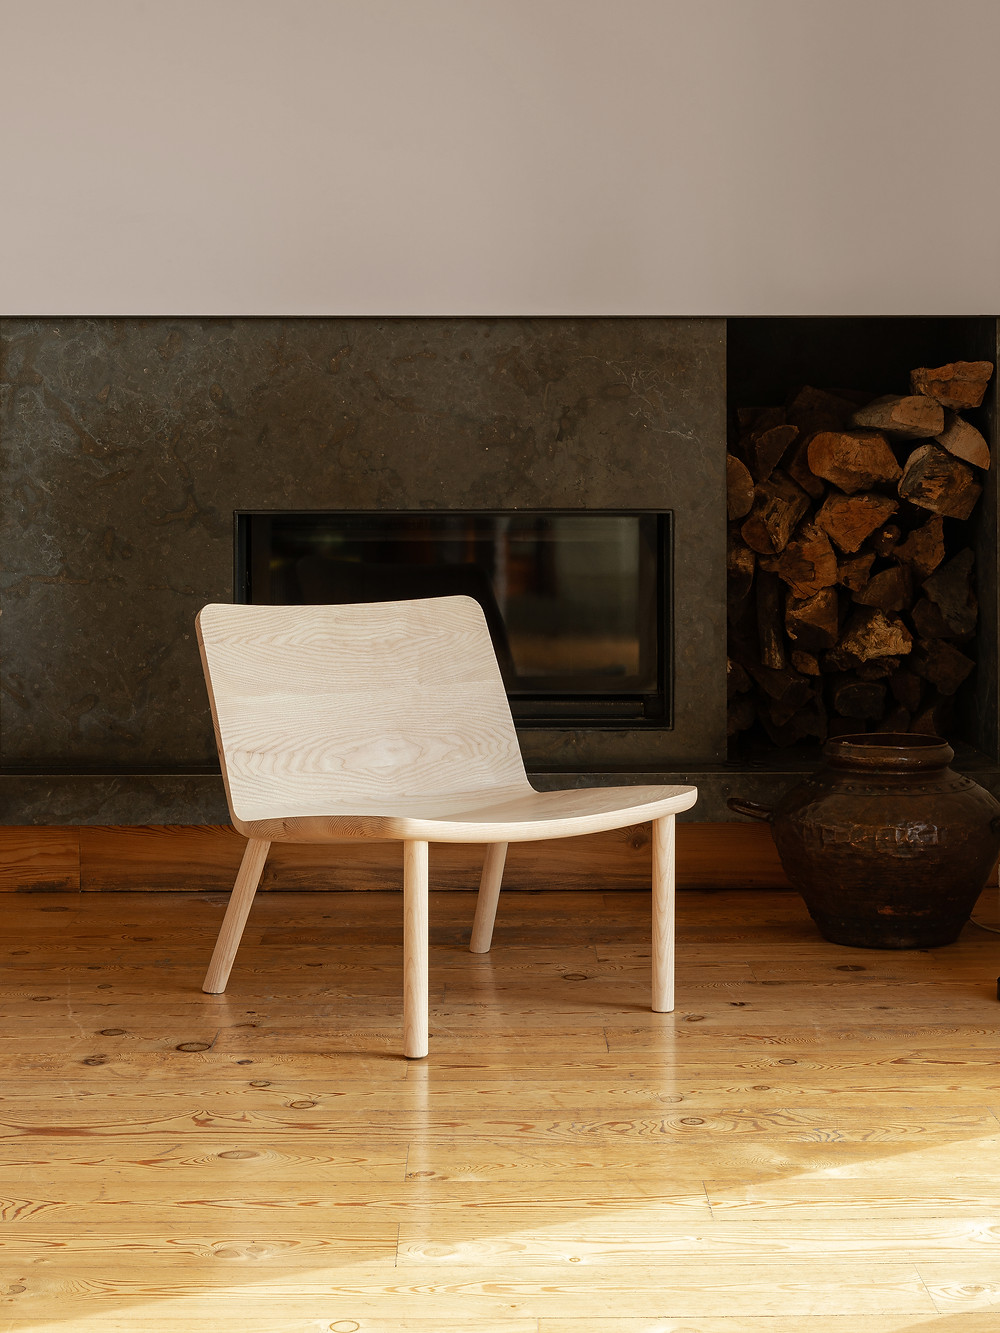 Wood Chair Minimal Design made in Portugal